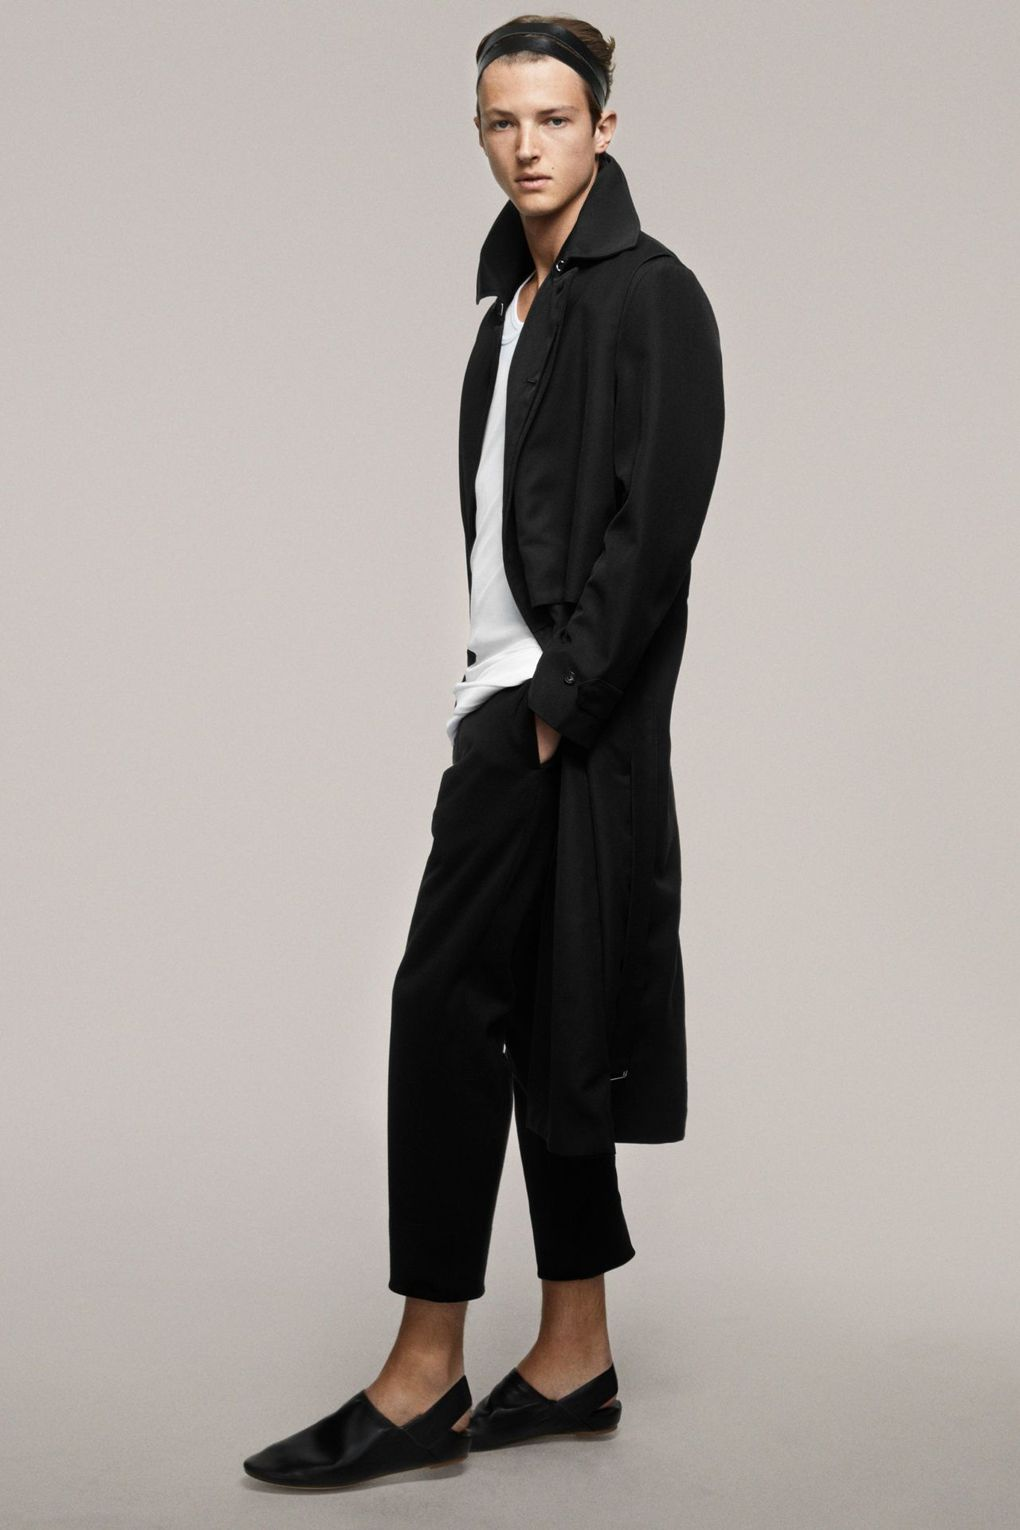 Just Things of Beauty Black Cropped Suiting Pants SS17.jfif